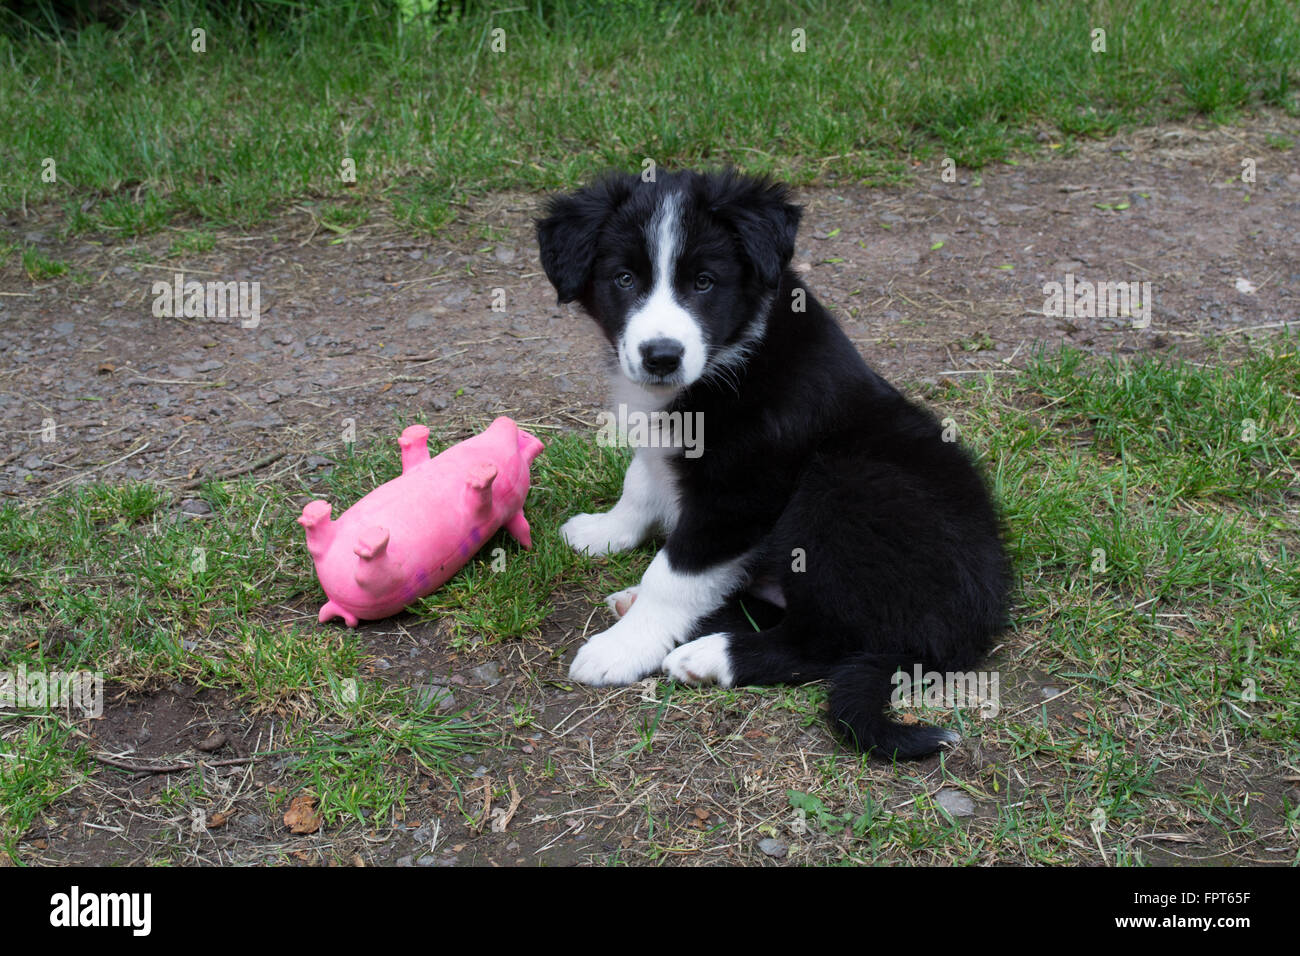 Border Collie puppy with toy pig - Stock Image